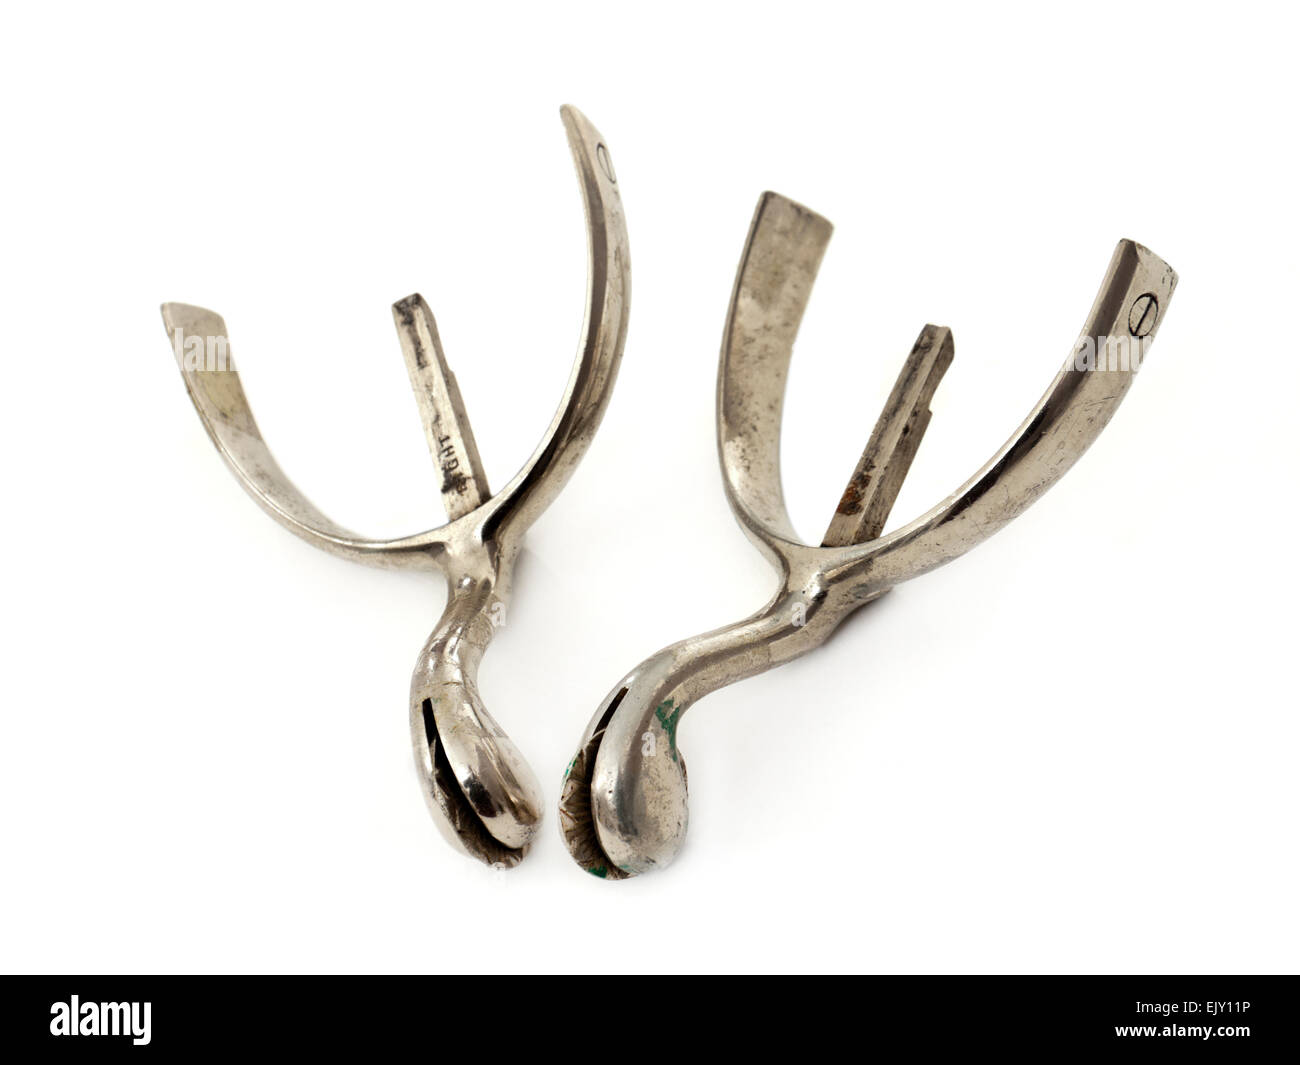 Vintage British army Officer's boot spurs made by Henry Maxwell, 8-9 Dover Street, London - Stock Image